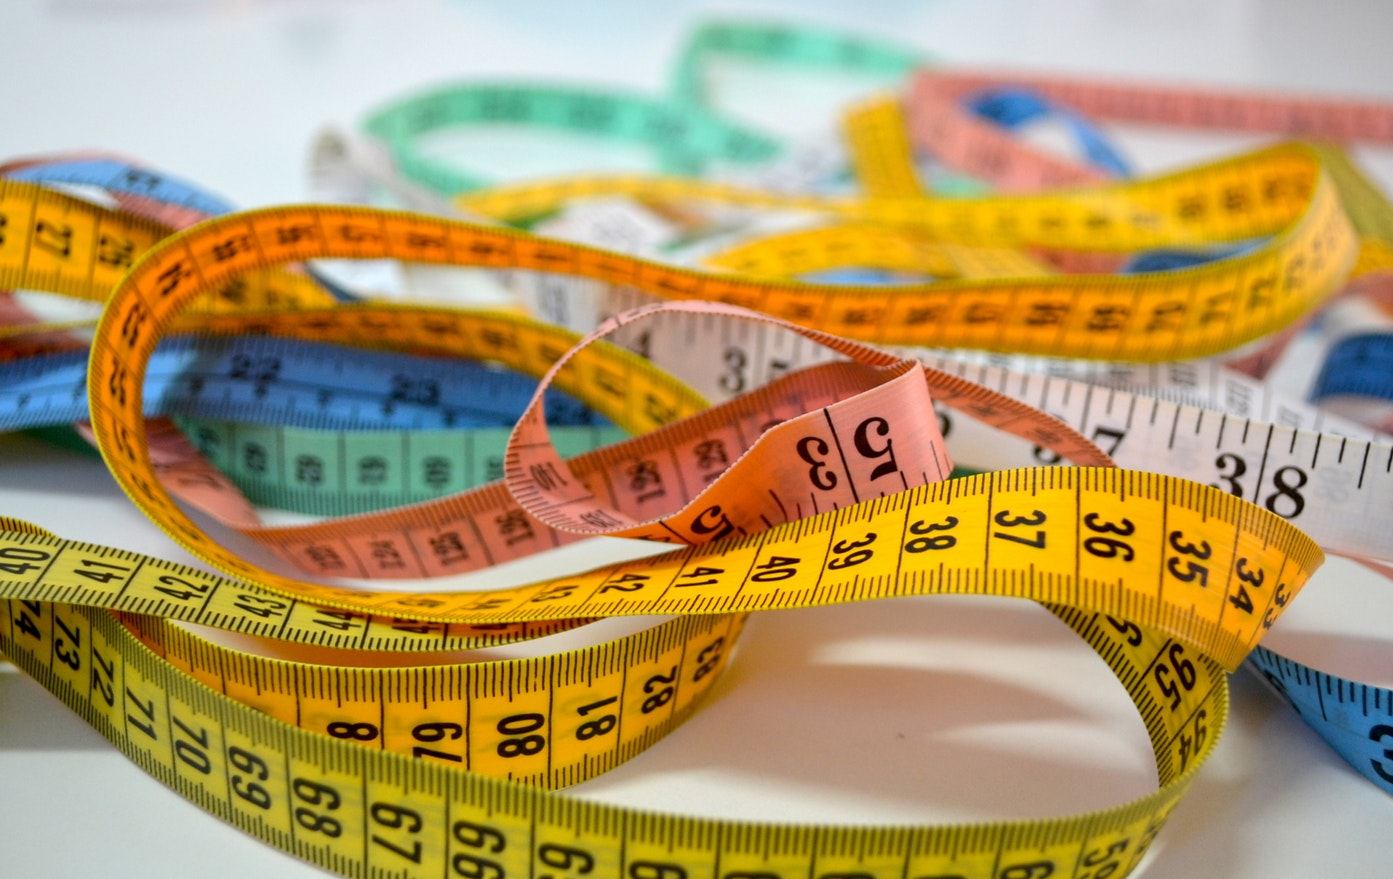 Measurement is About Purpose, Not Just Metrics